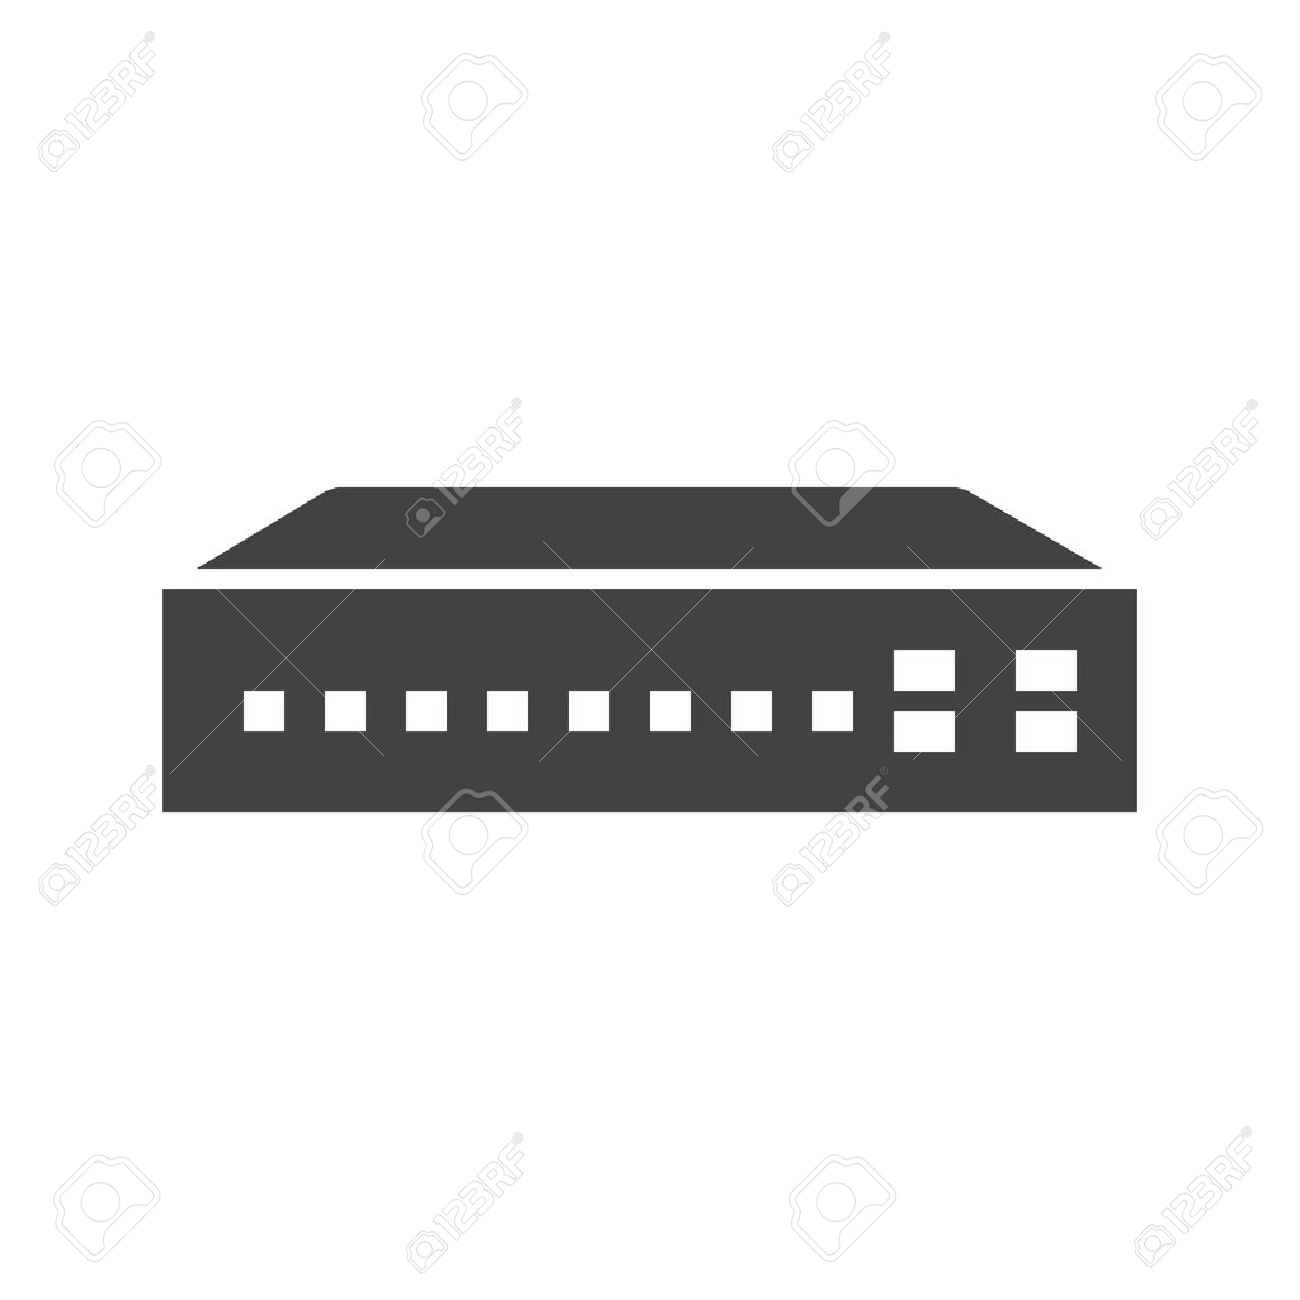 Networking switch, network, router icon vector image  Can also